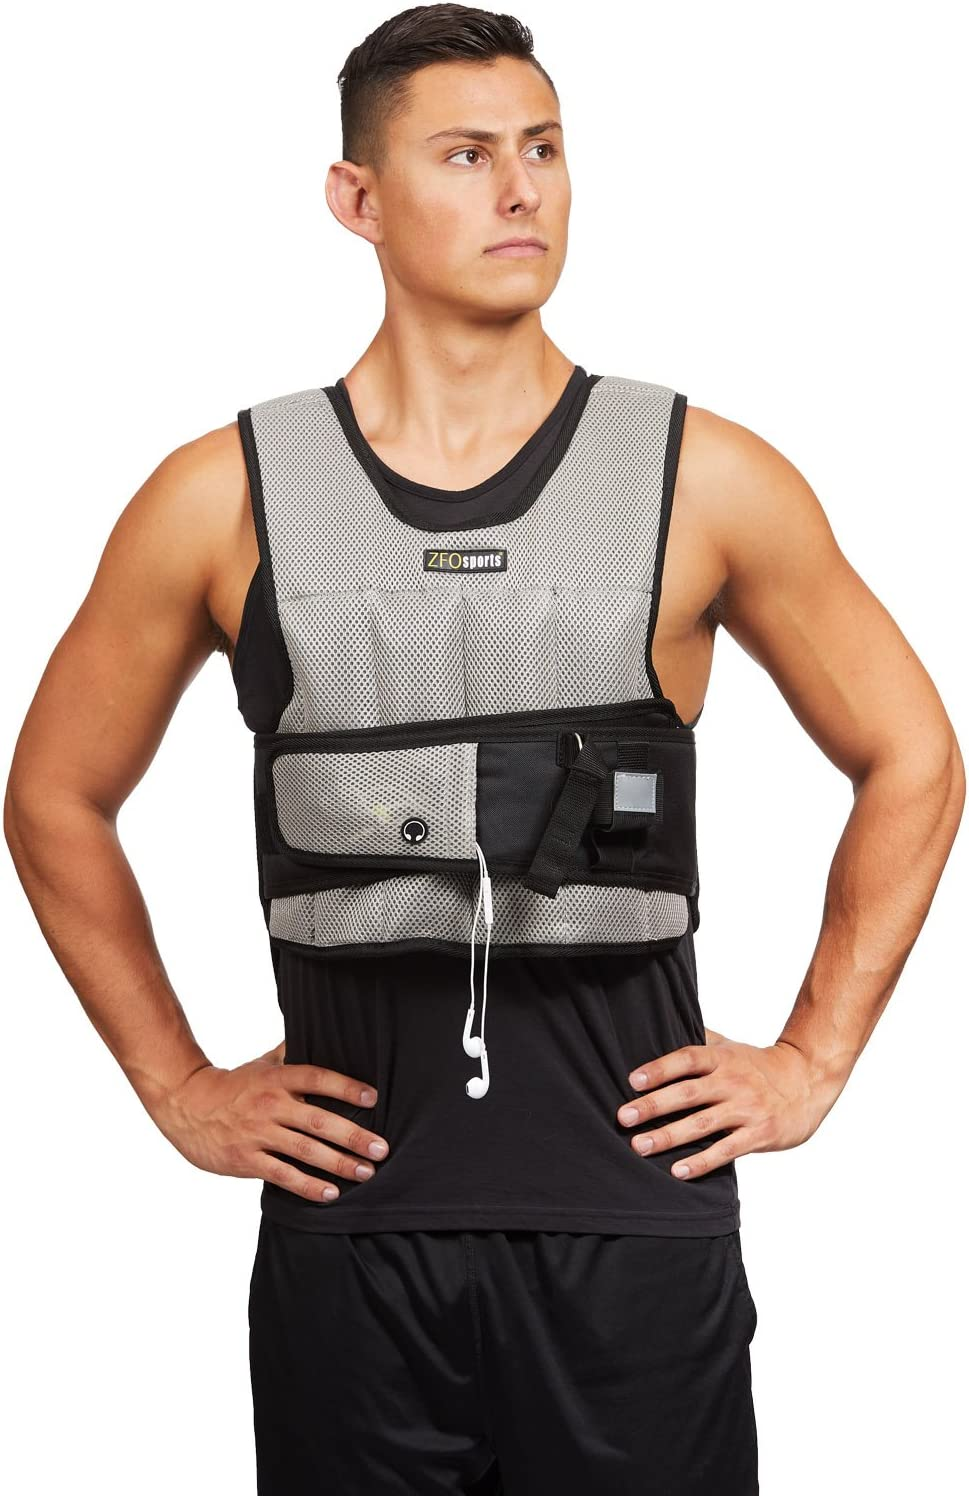 ZFOsports Short Adjustable Weighted Vest 20